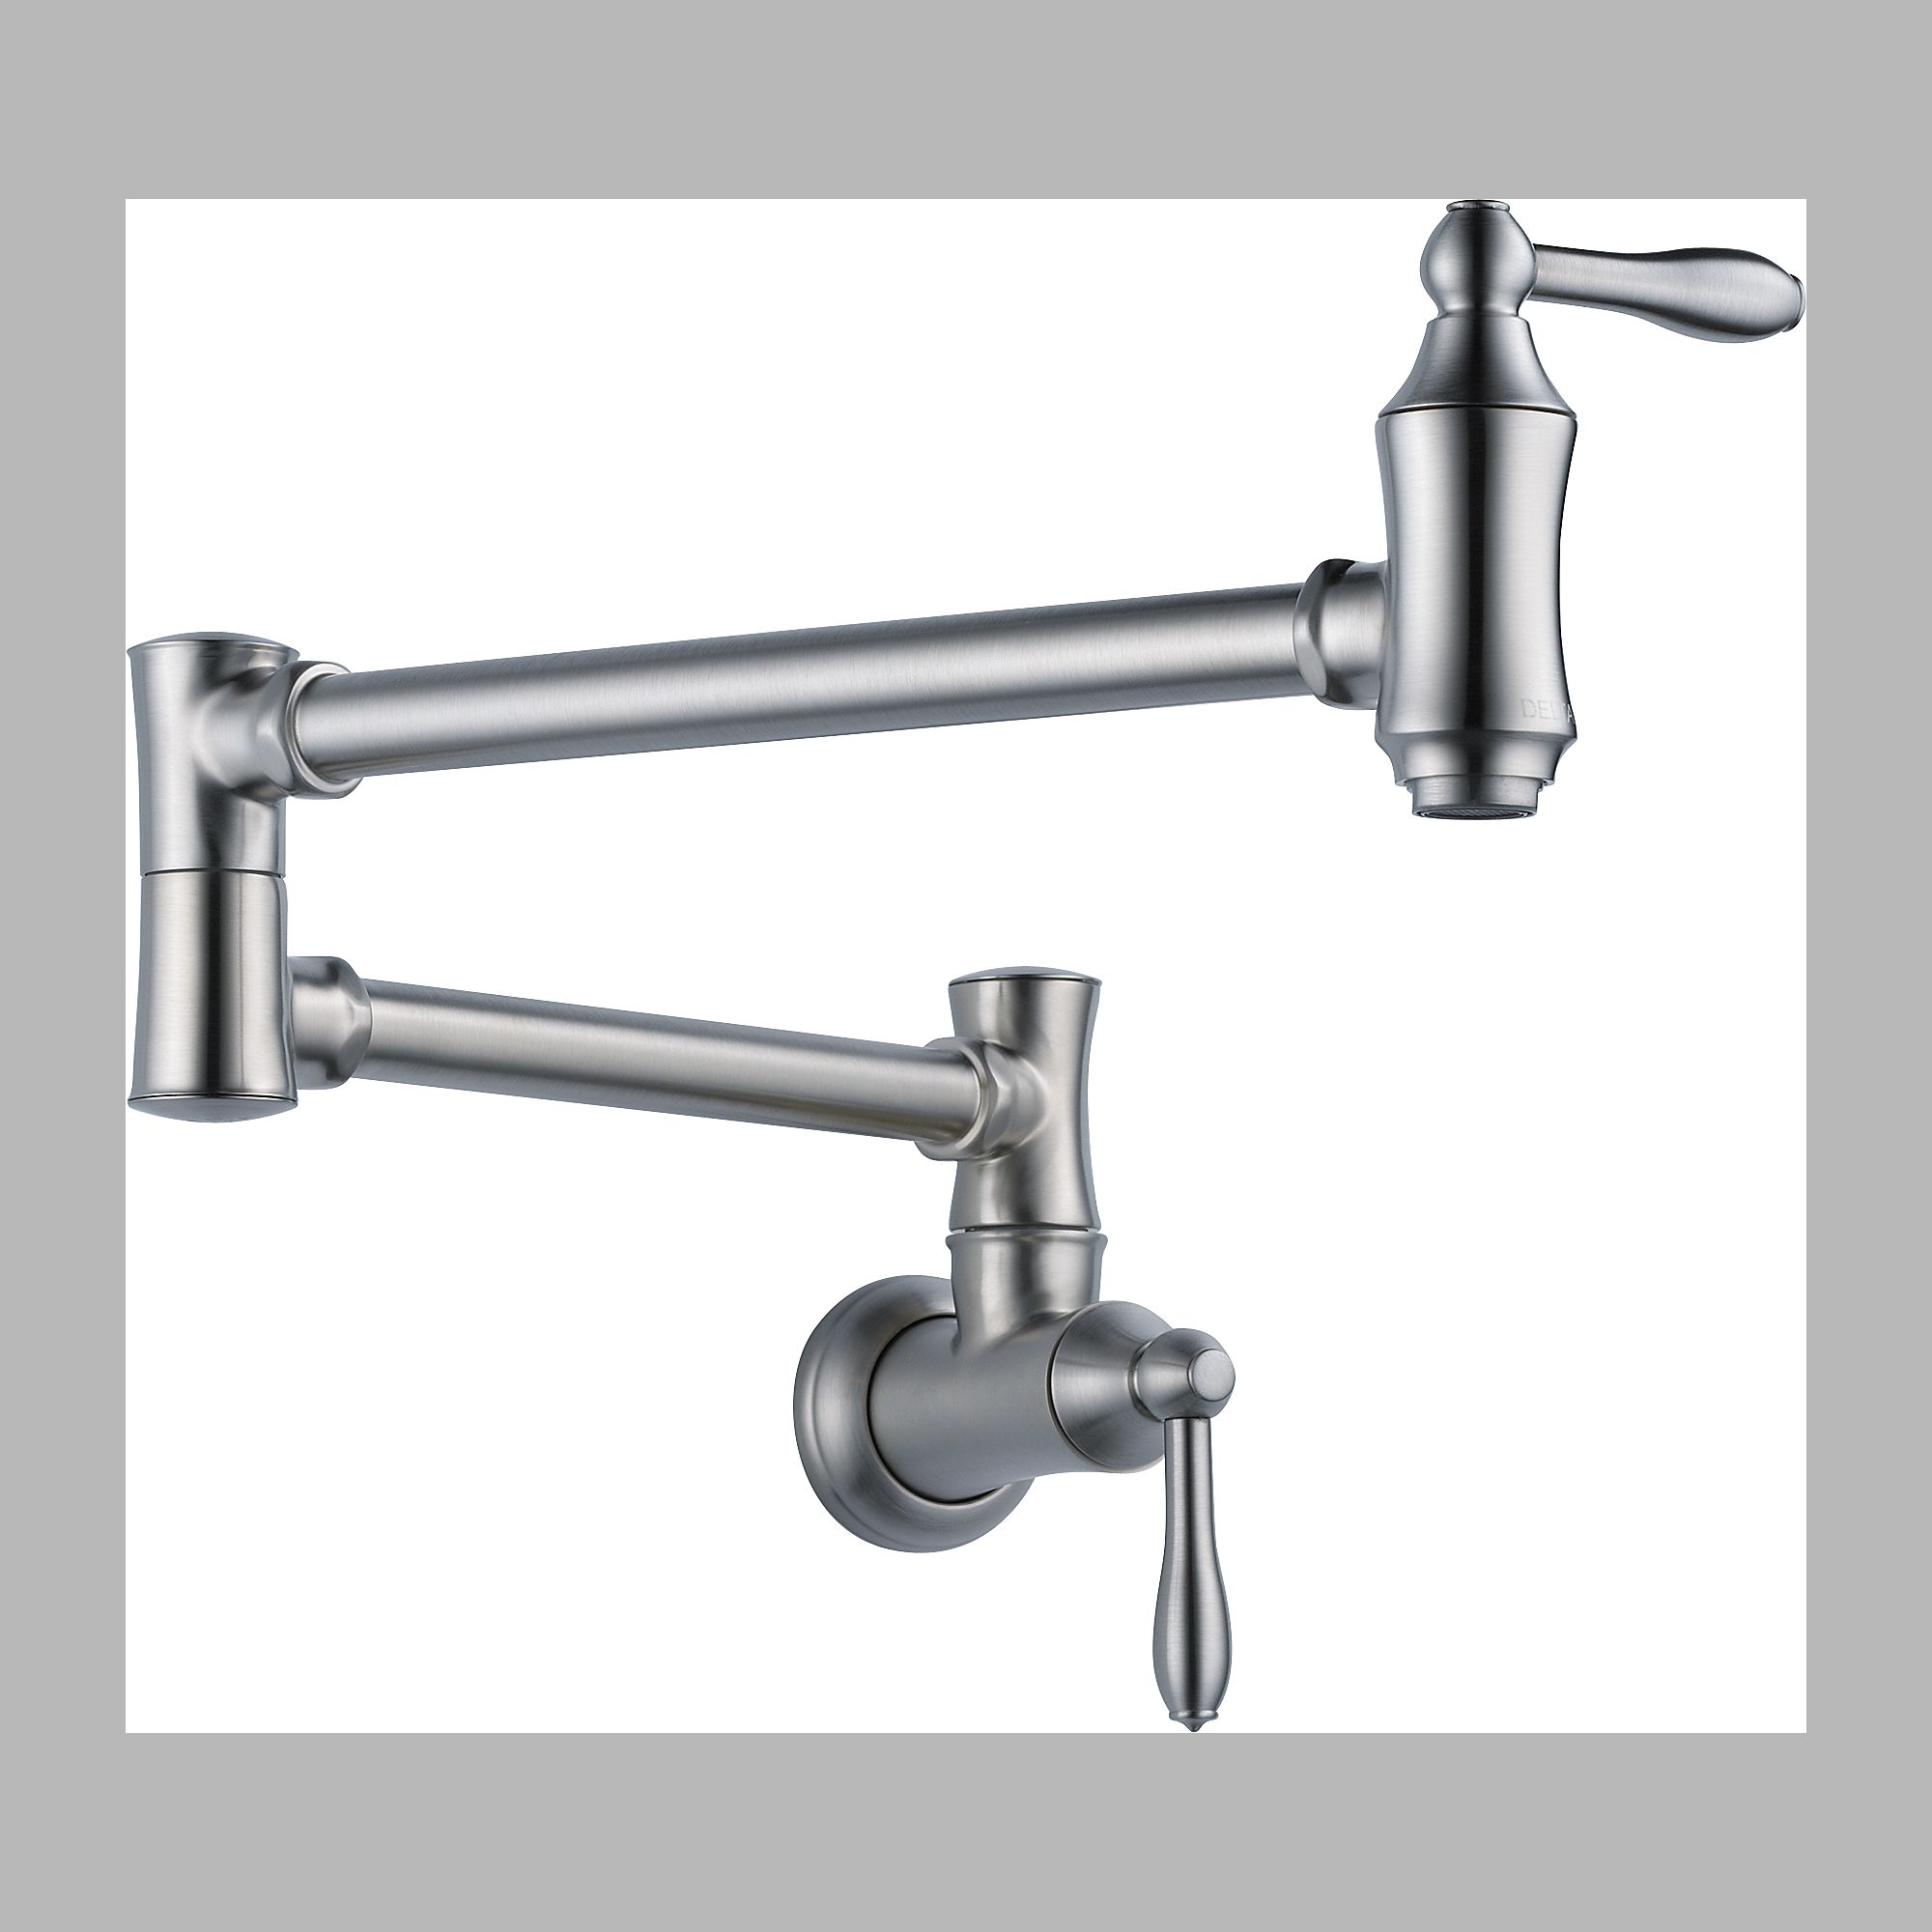 Delta 1177LF-AR Pot Filler Faucet - Wall Mount